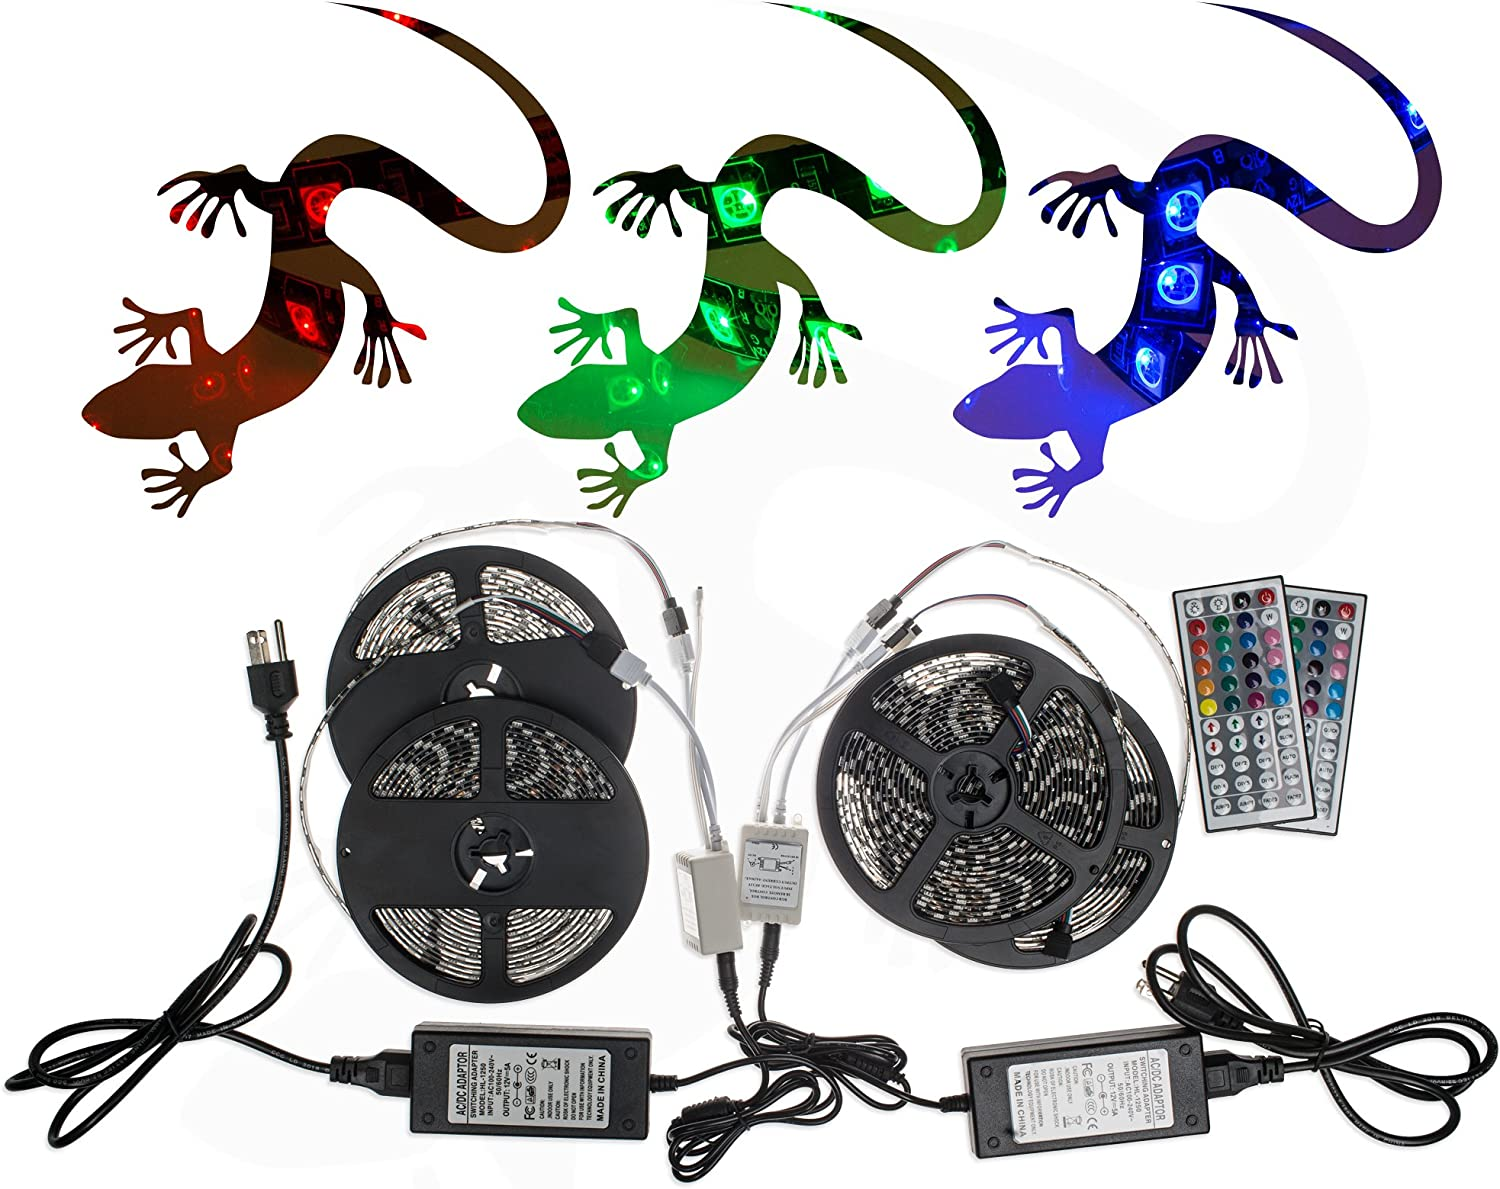 20M 5050SMD RGB Super beauty product restock quality Brand new top LED Strip Light Kit Key Outlet 2 Po Remote 44 5A